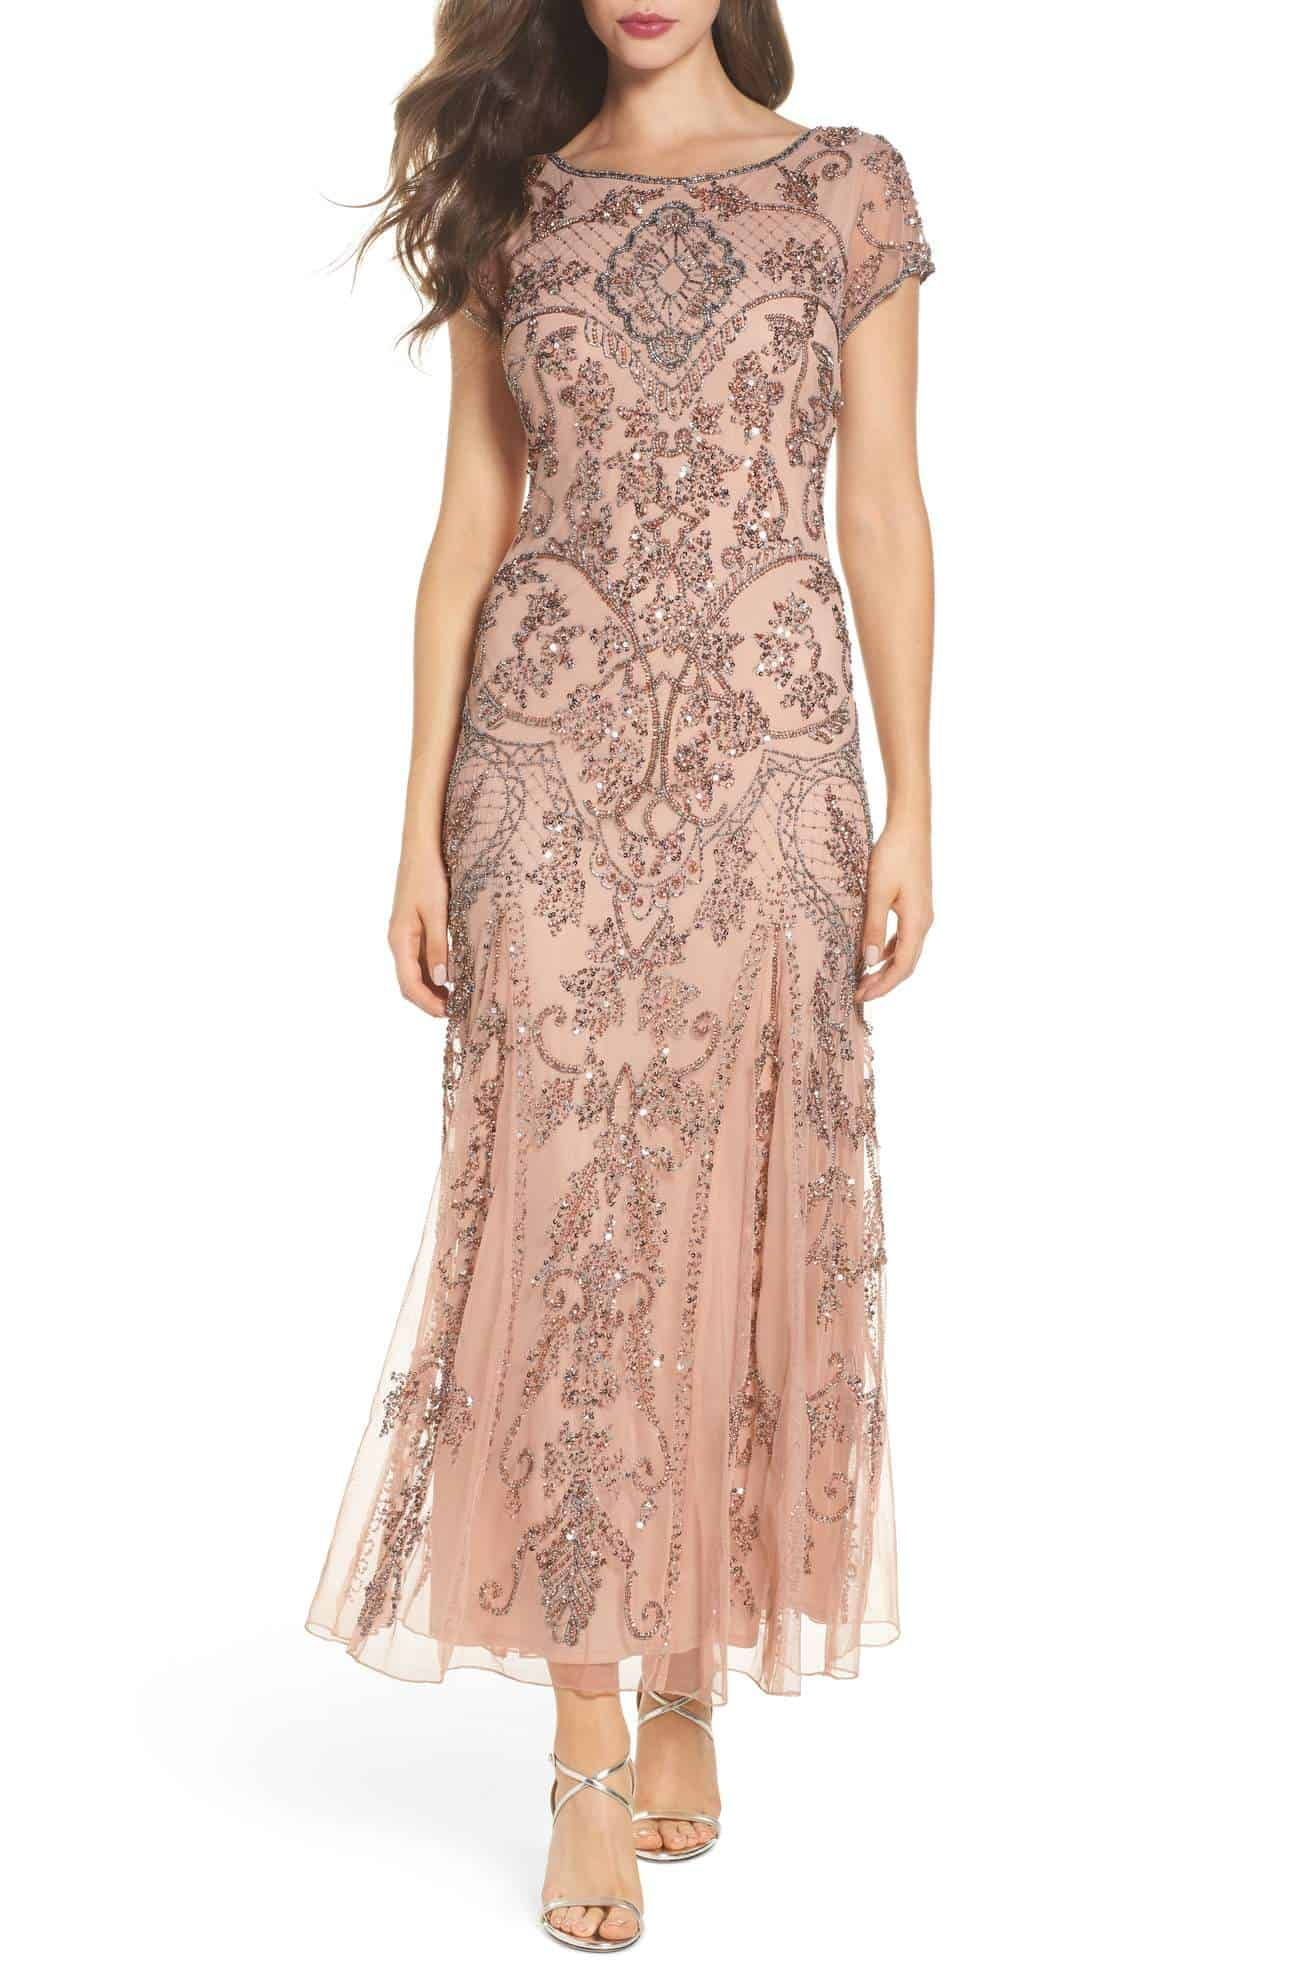 Rose Gold Or Pink Beaded Mother Of The Bride Tea Length Dress With Short Sleeves